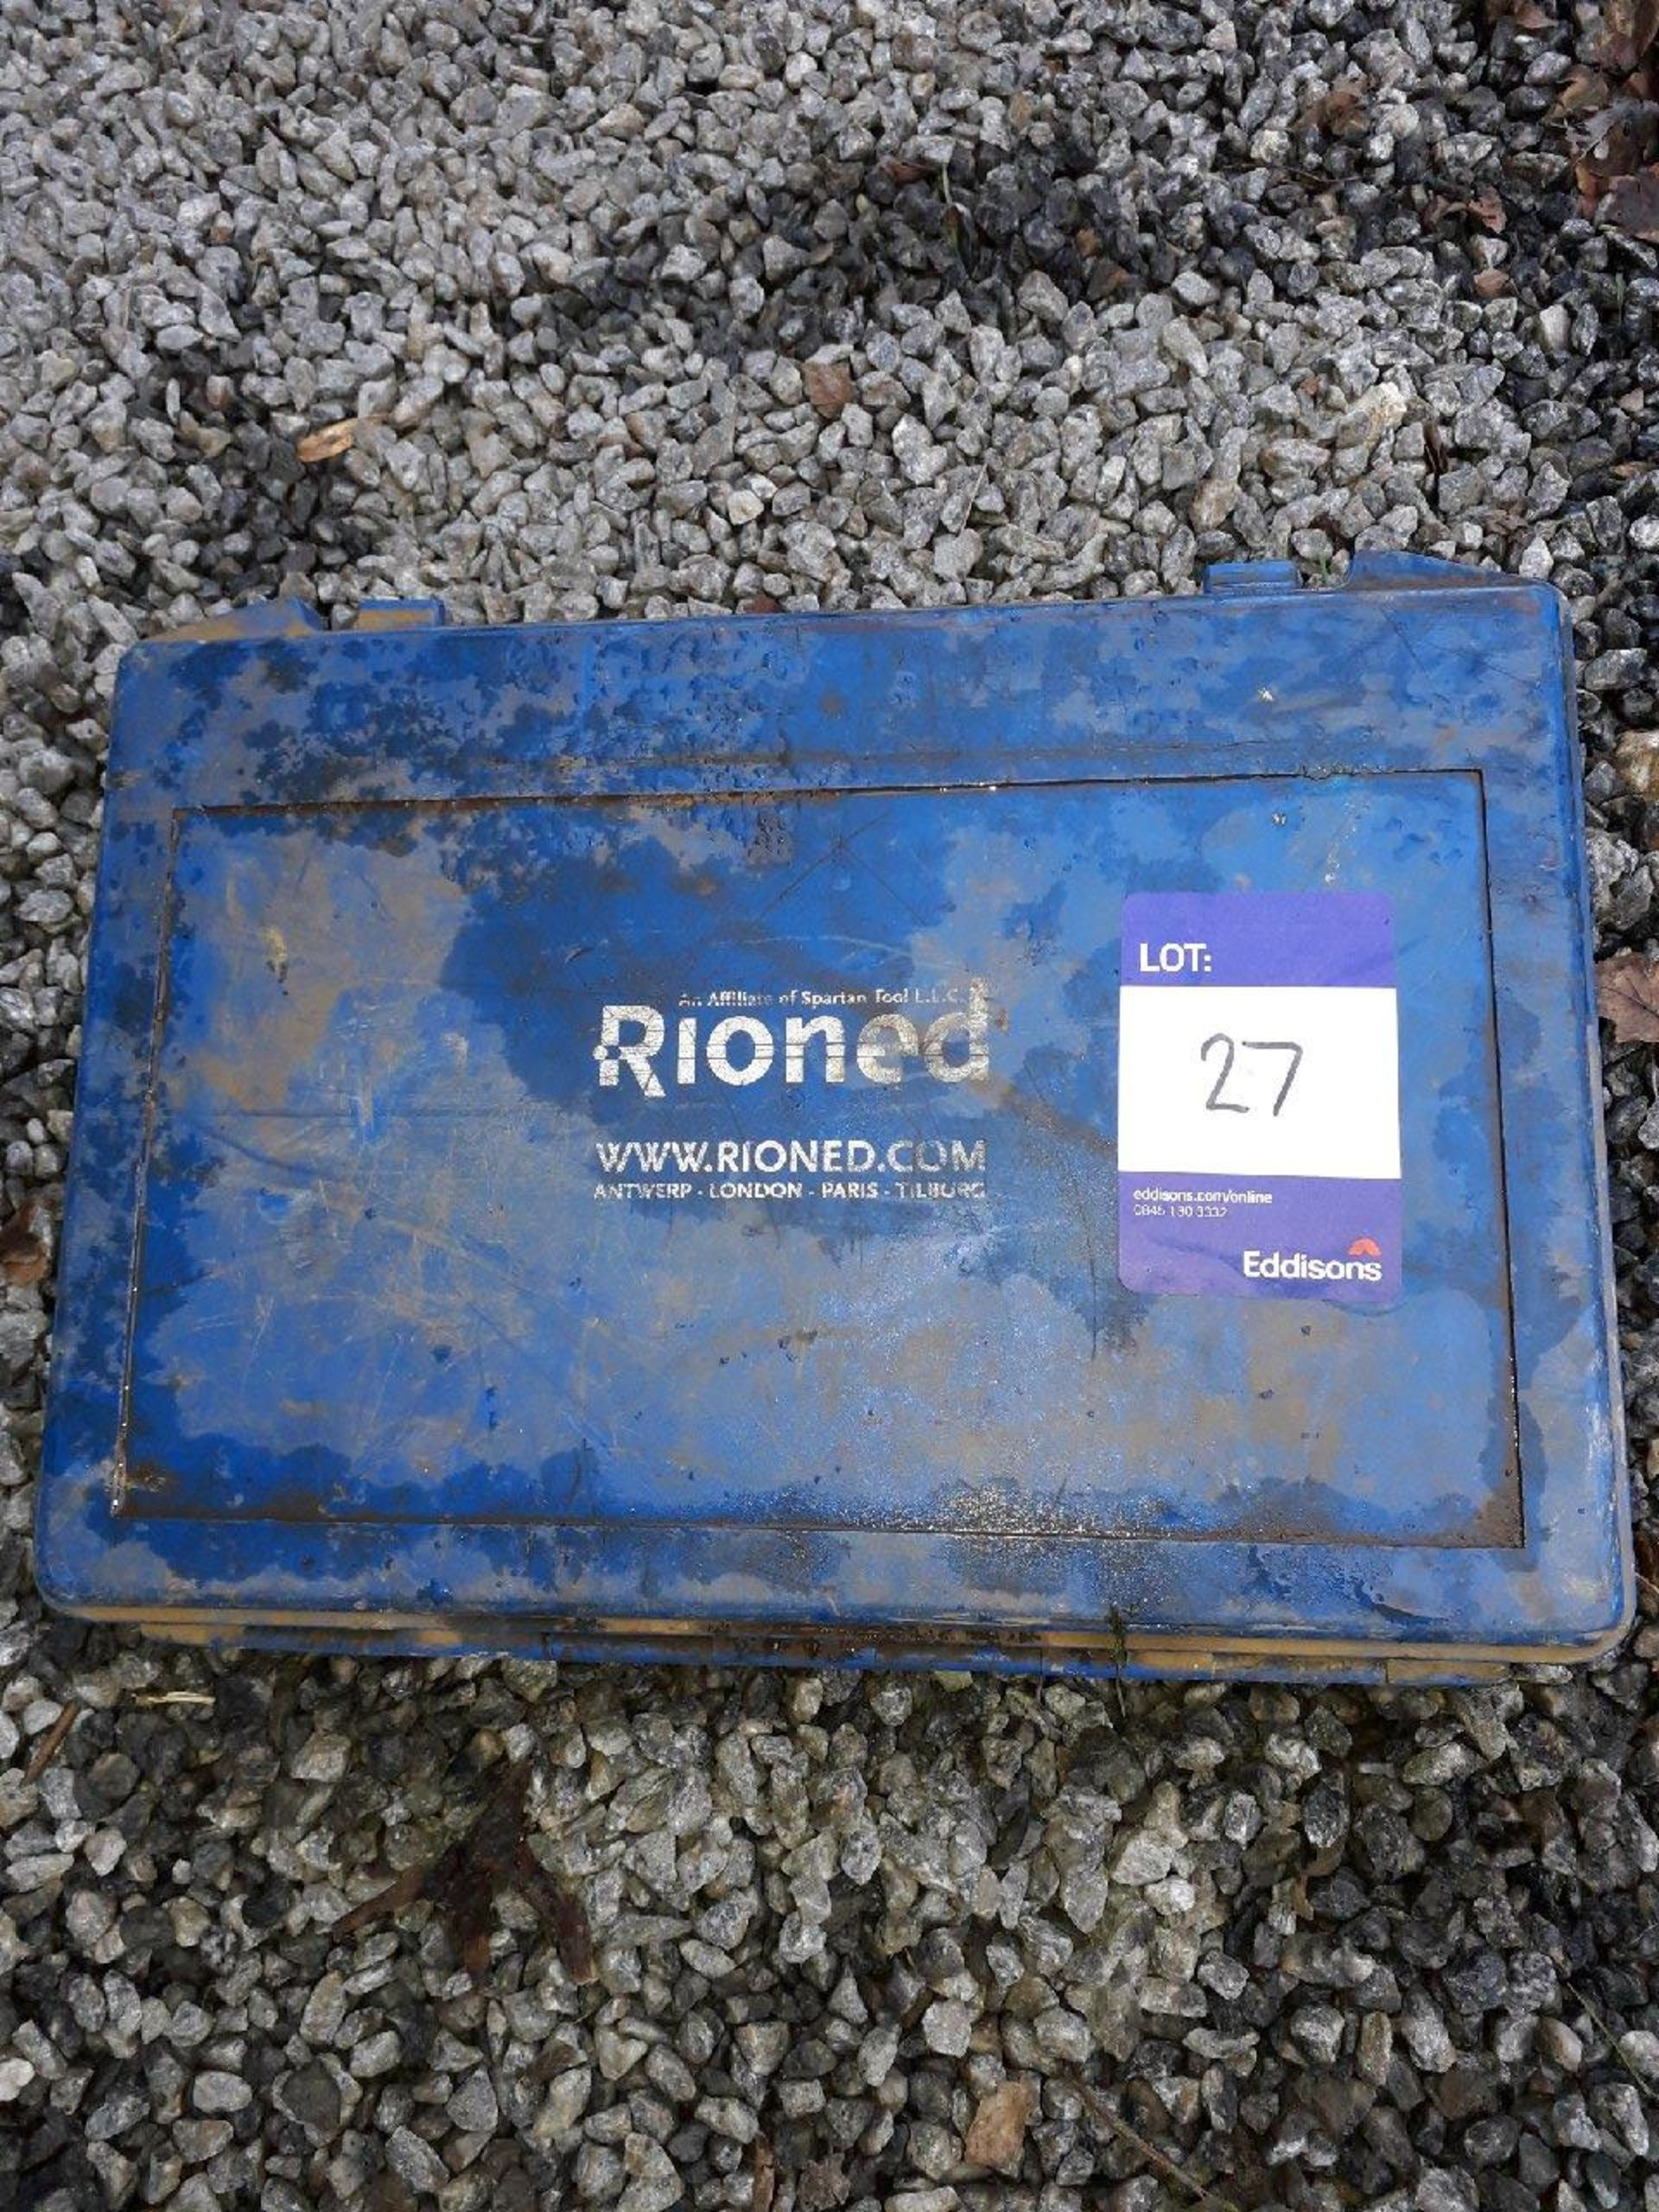 Lot 27 - Rioned drill bits. (Please note: Viewing is by appointment only. Please Tel: 0161 429 5800)